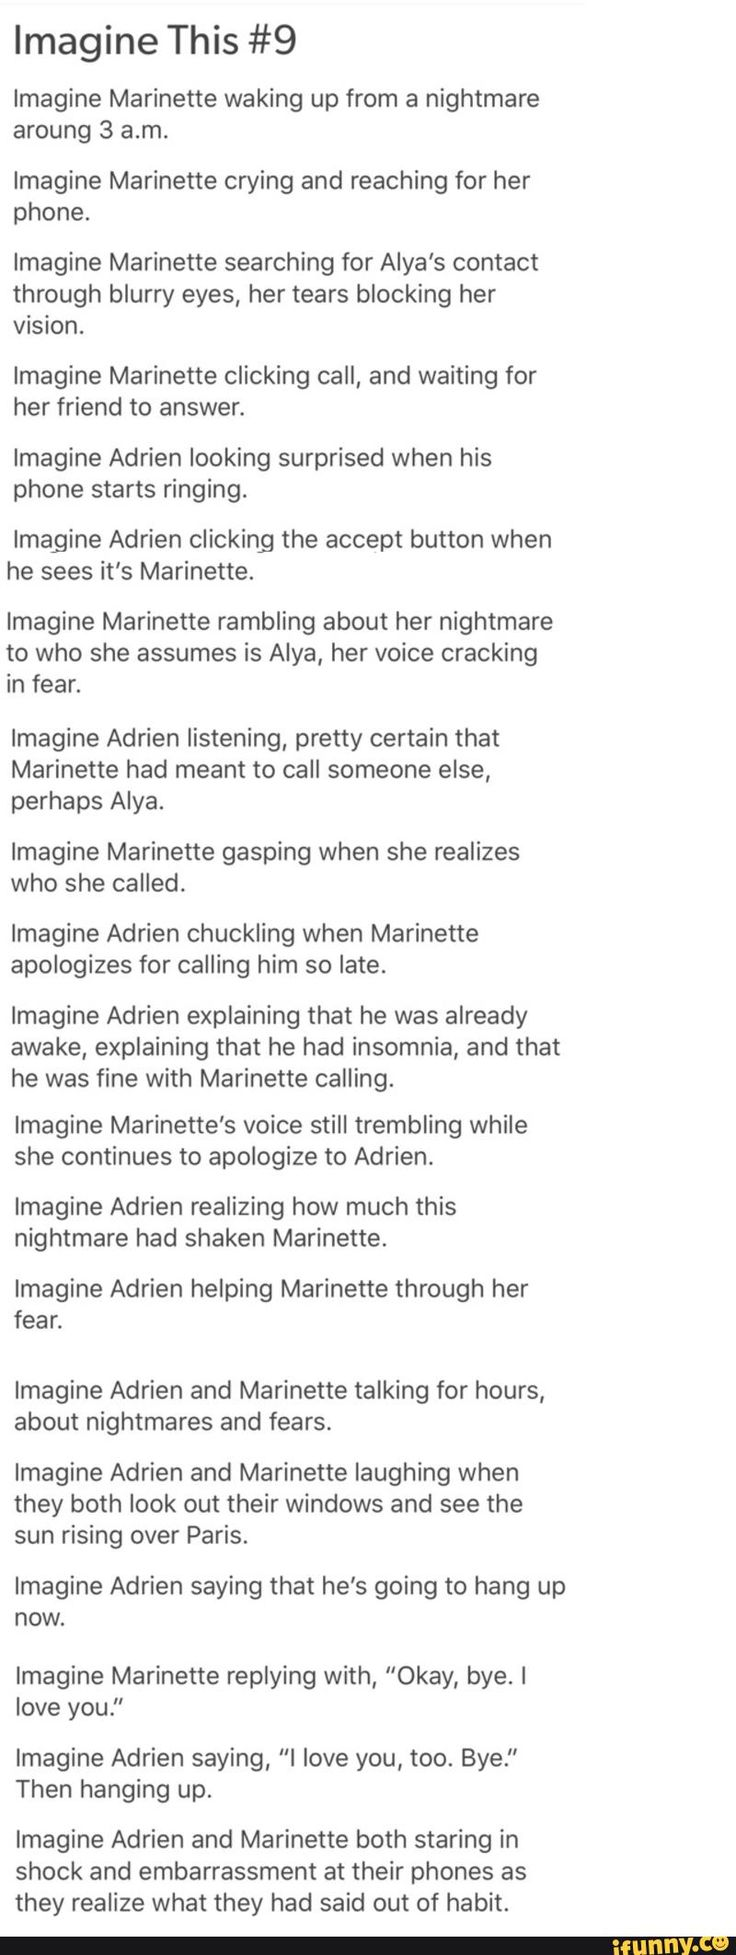 Out of habit? Does this person know Adrien's father?